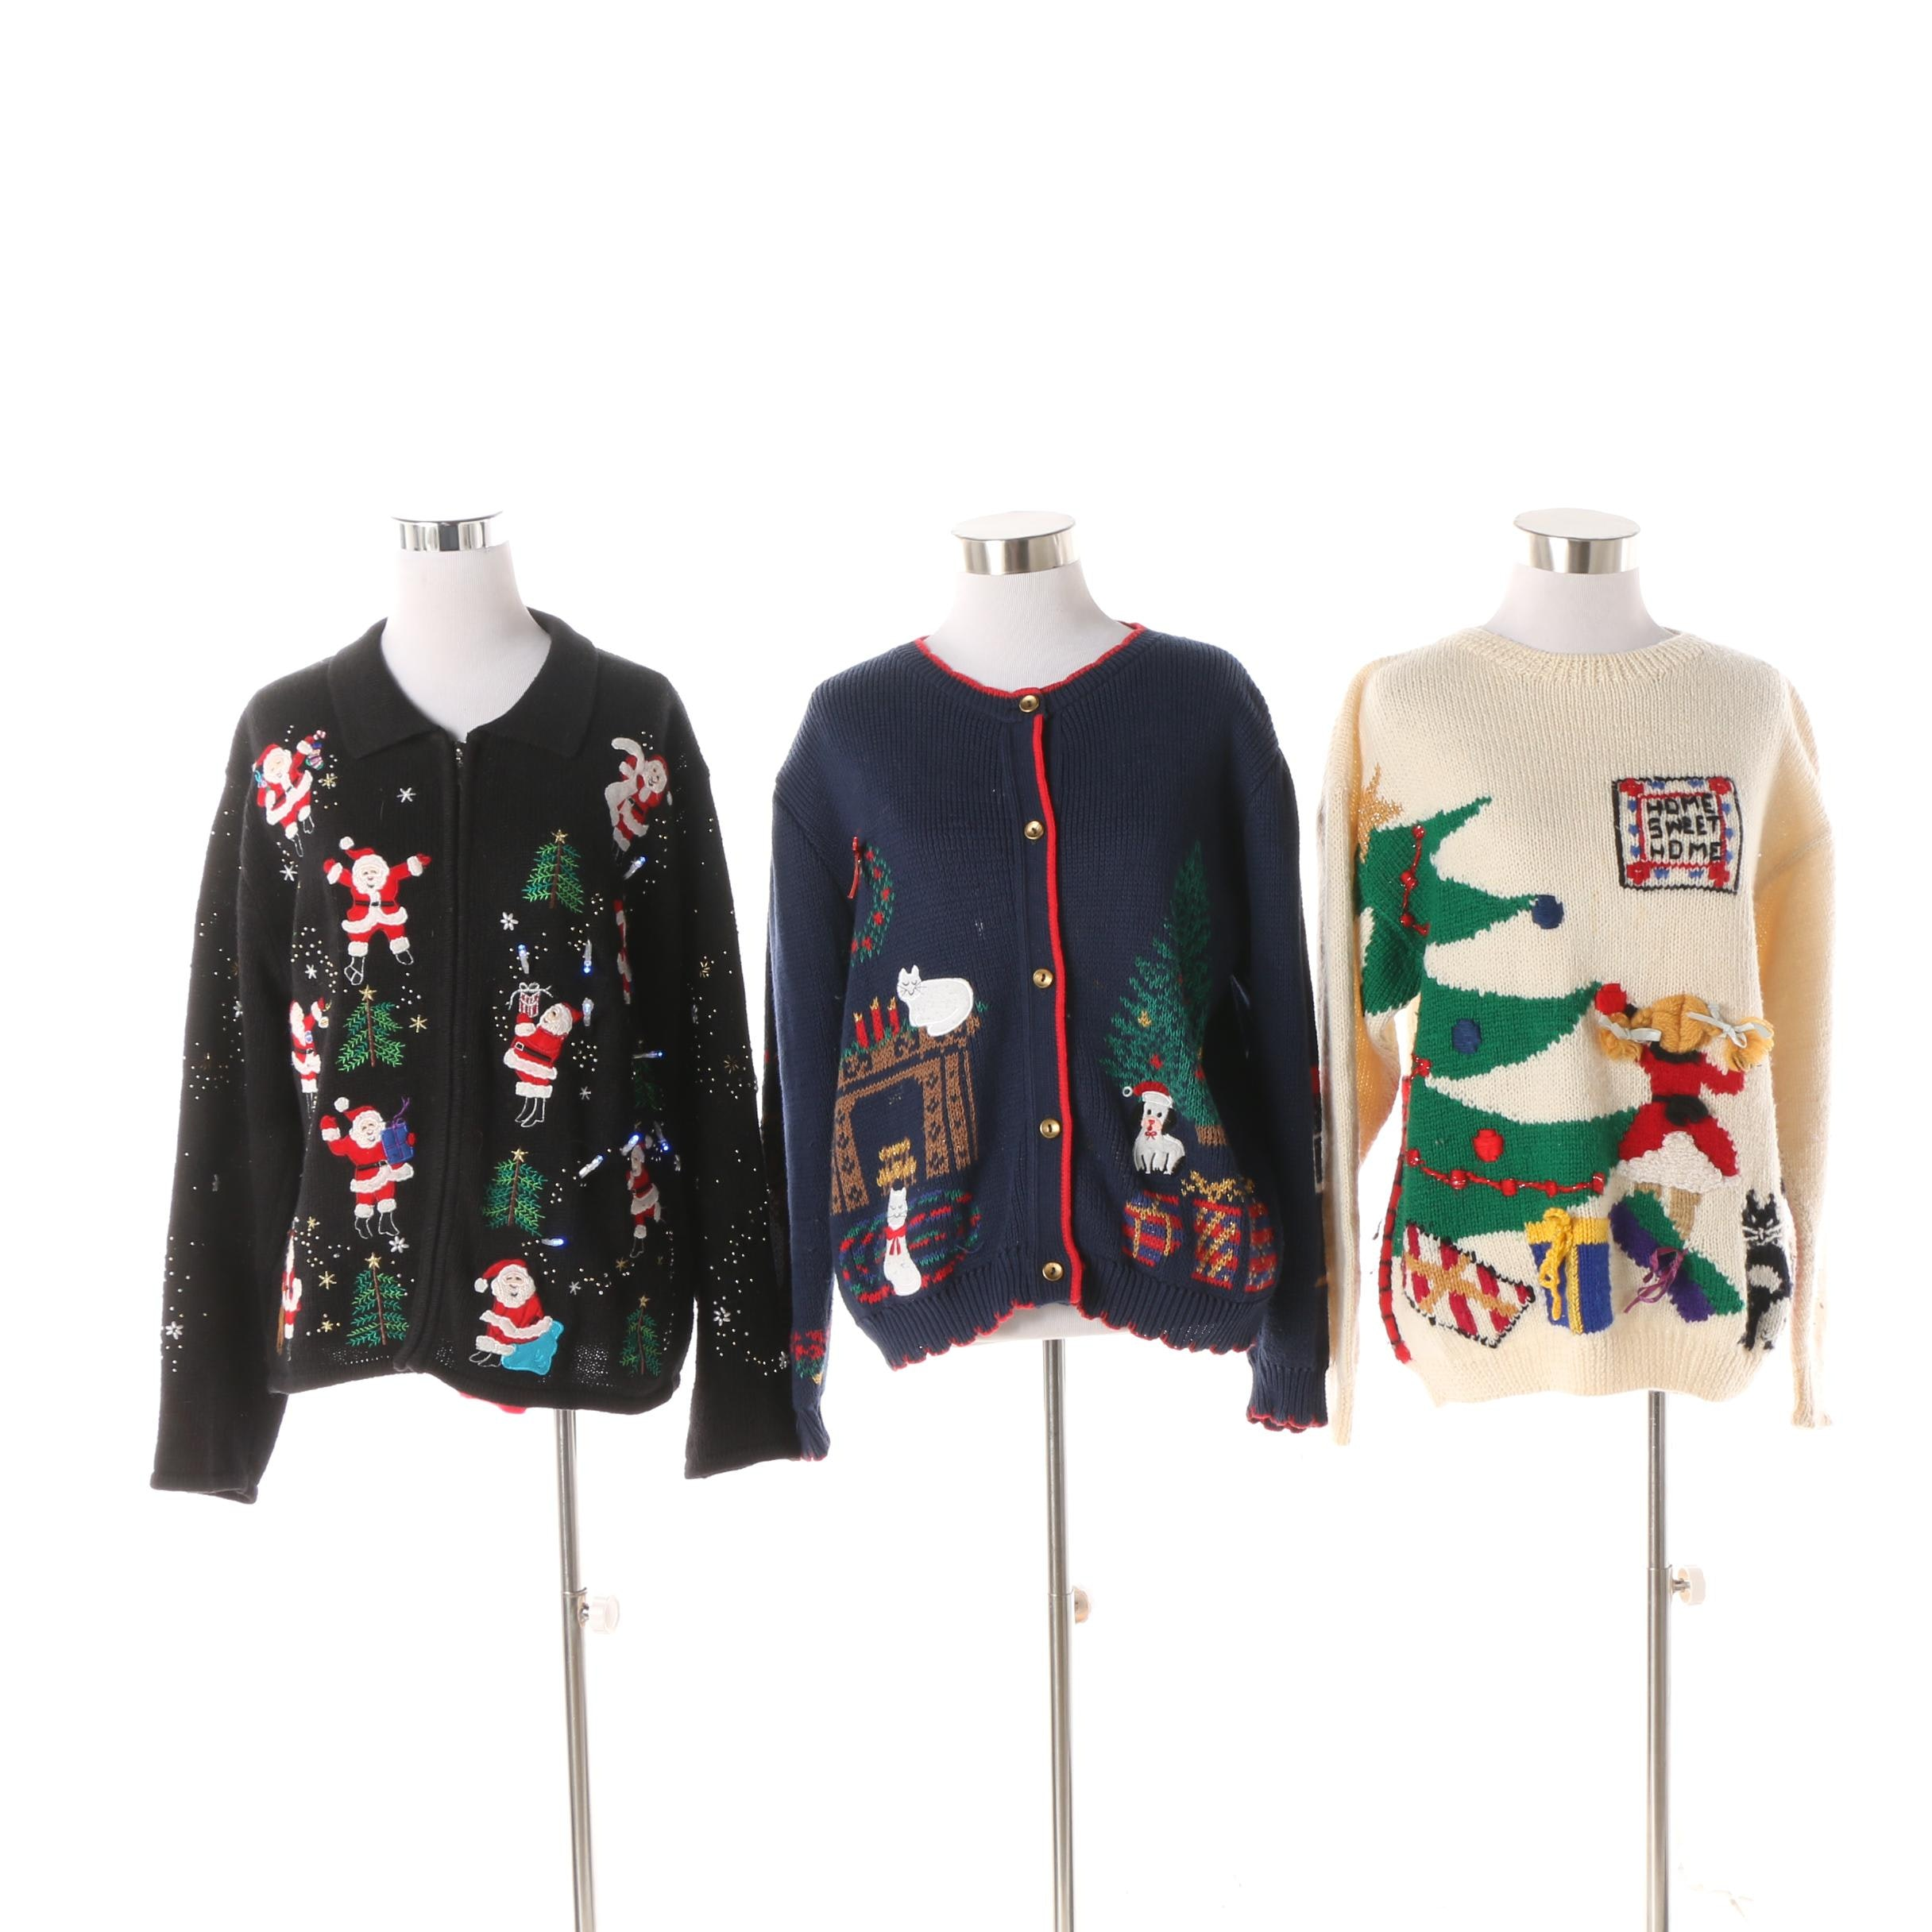 Women's Embellished Knit and Light-Up Christmas Cardigans